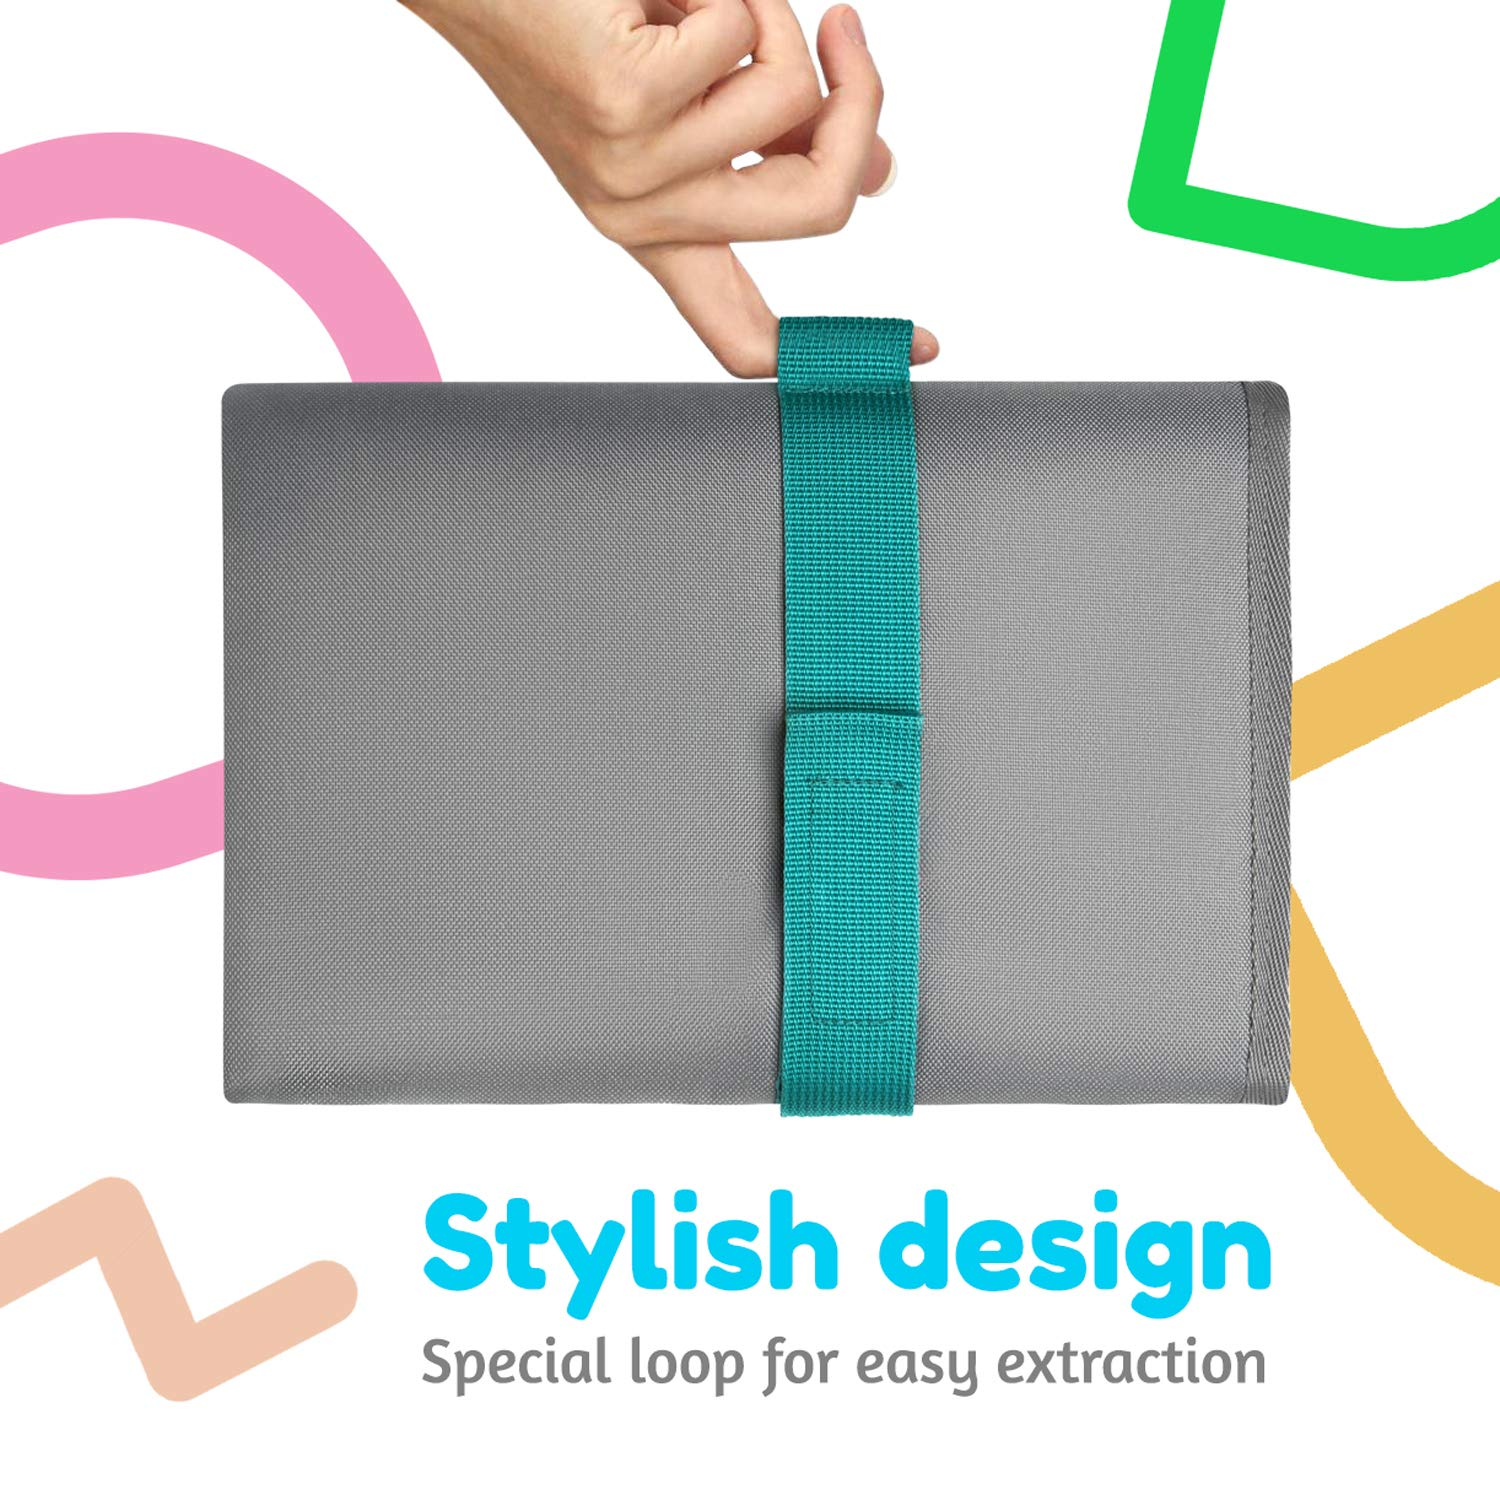 Toolik Baby Diaper Changing Pad, Extra Large (27.5 x 19.7 inch) Waterproof Mat for Stroller Walks or Diaper Bag, Fits Newborn and Toddler for Quick Change on The go, Grey